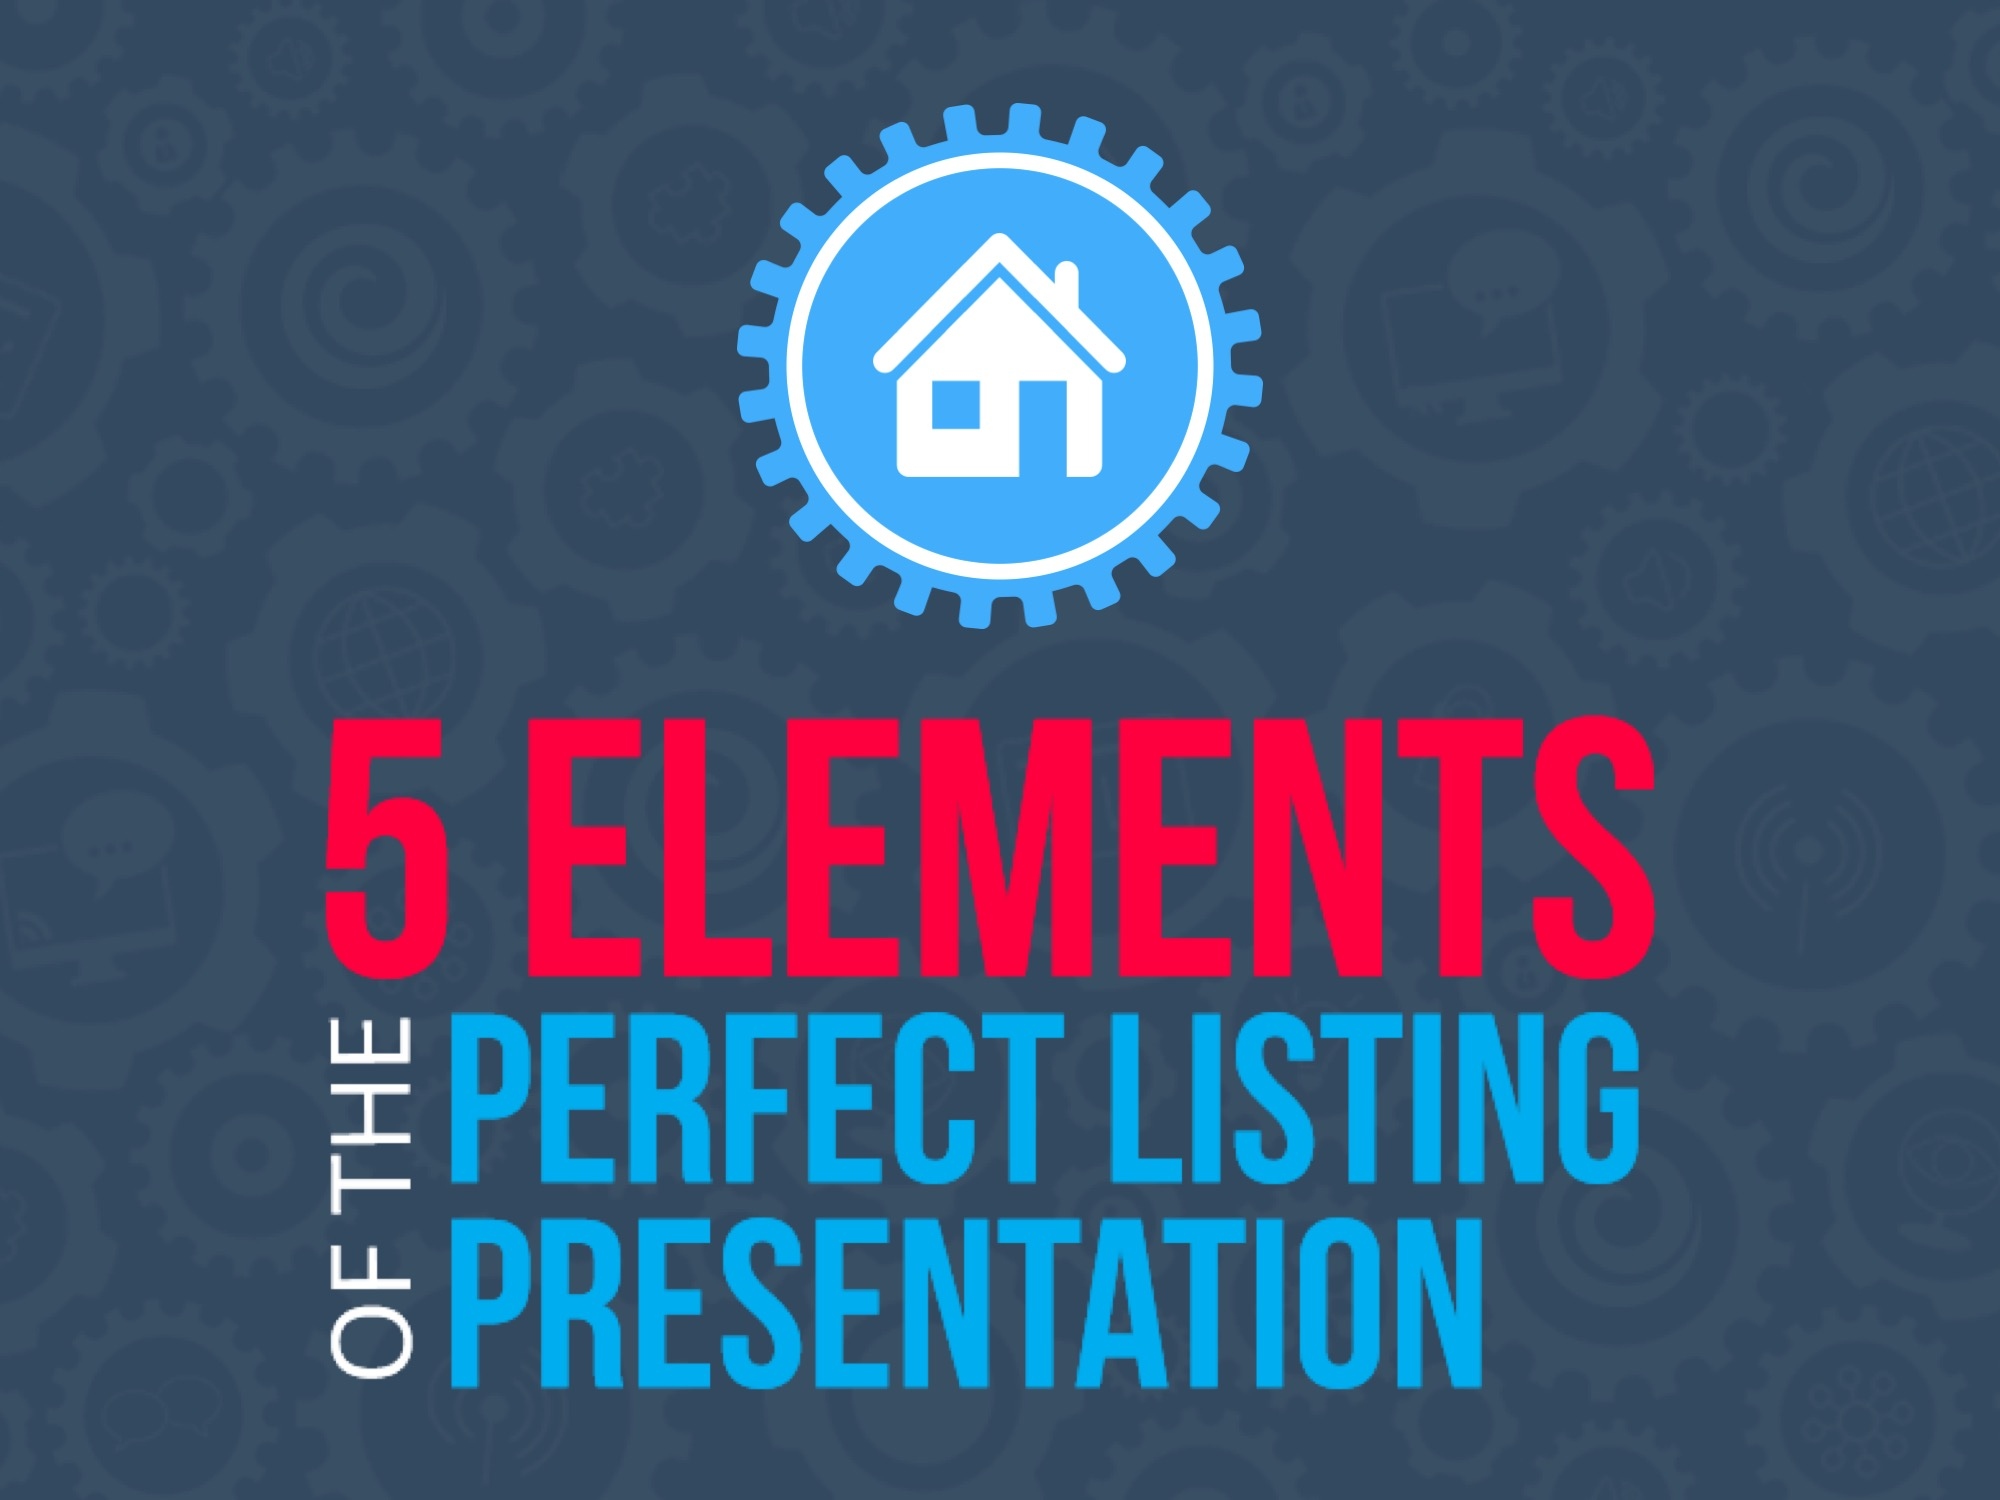 5 Elements of the Perfect Listing Presentation | Keeping Current Matters